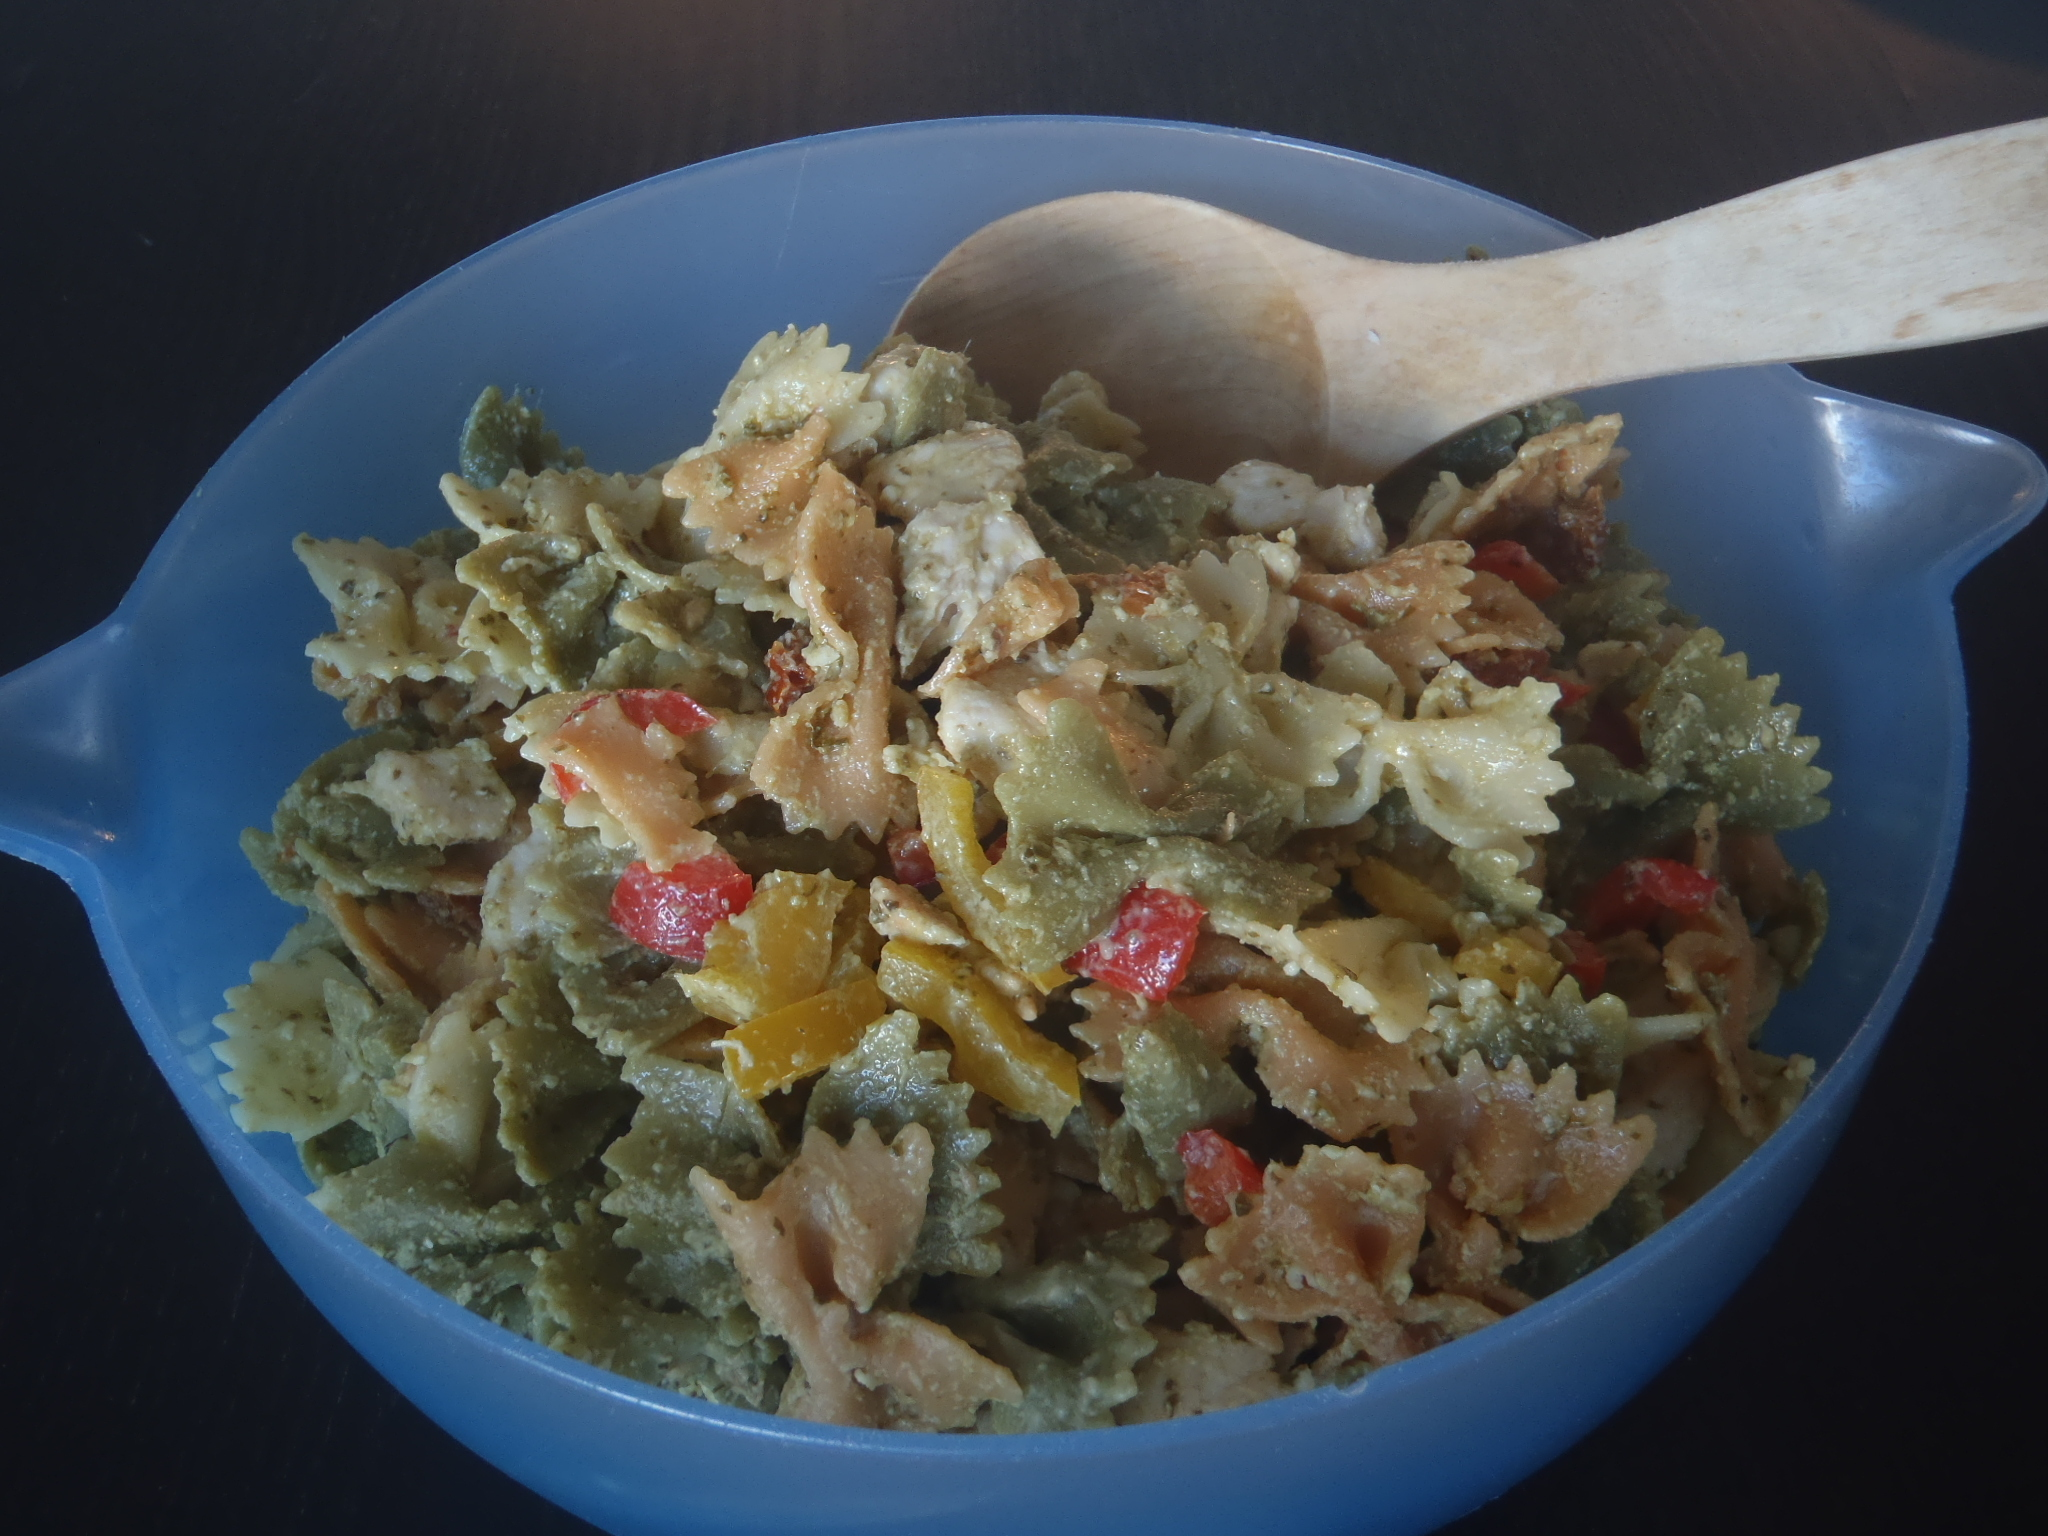 Kanapastasalaatti/Chicken Salad with Pasta and Pesto